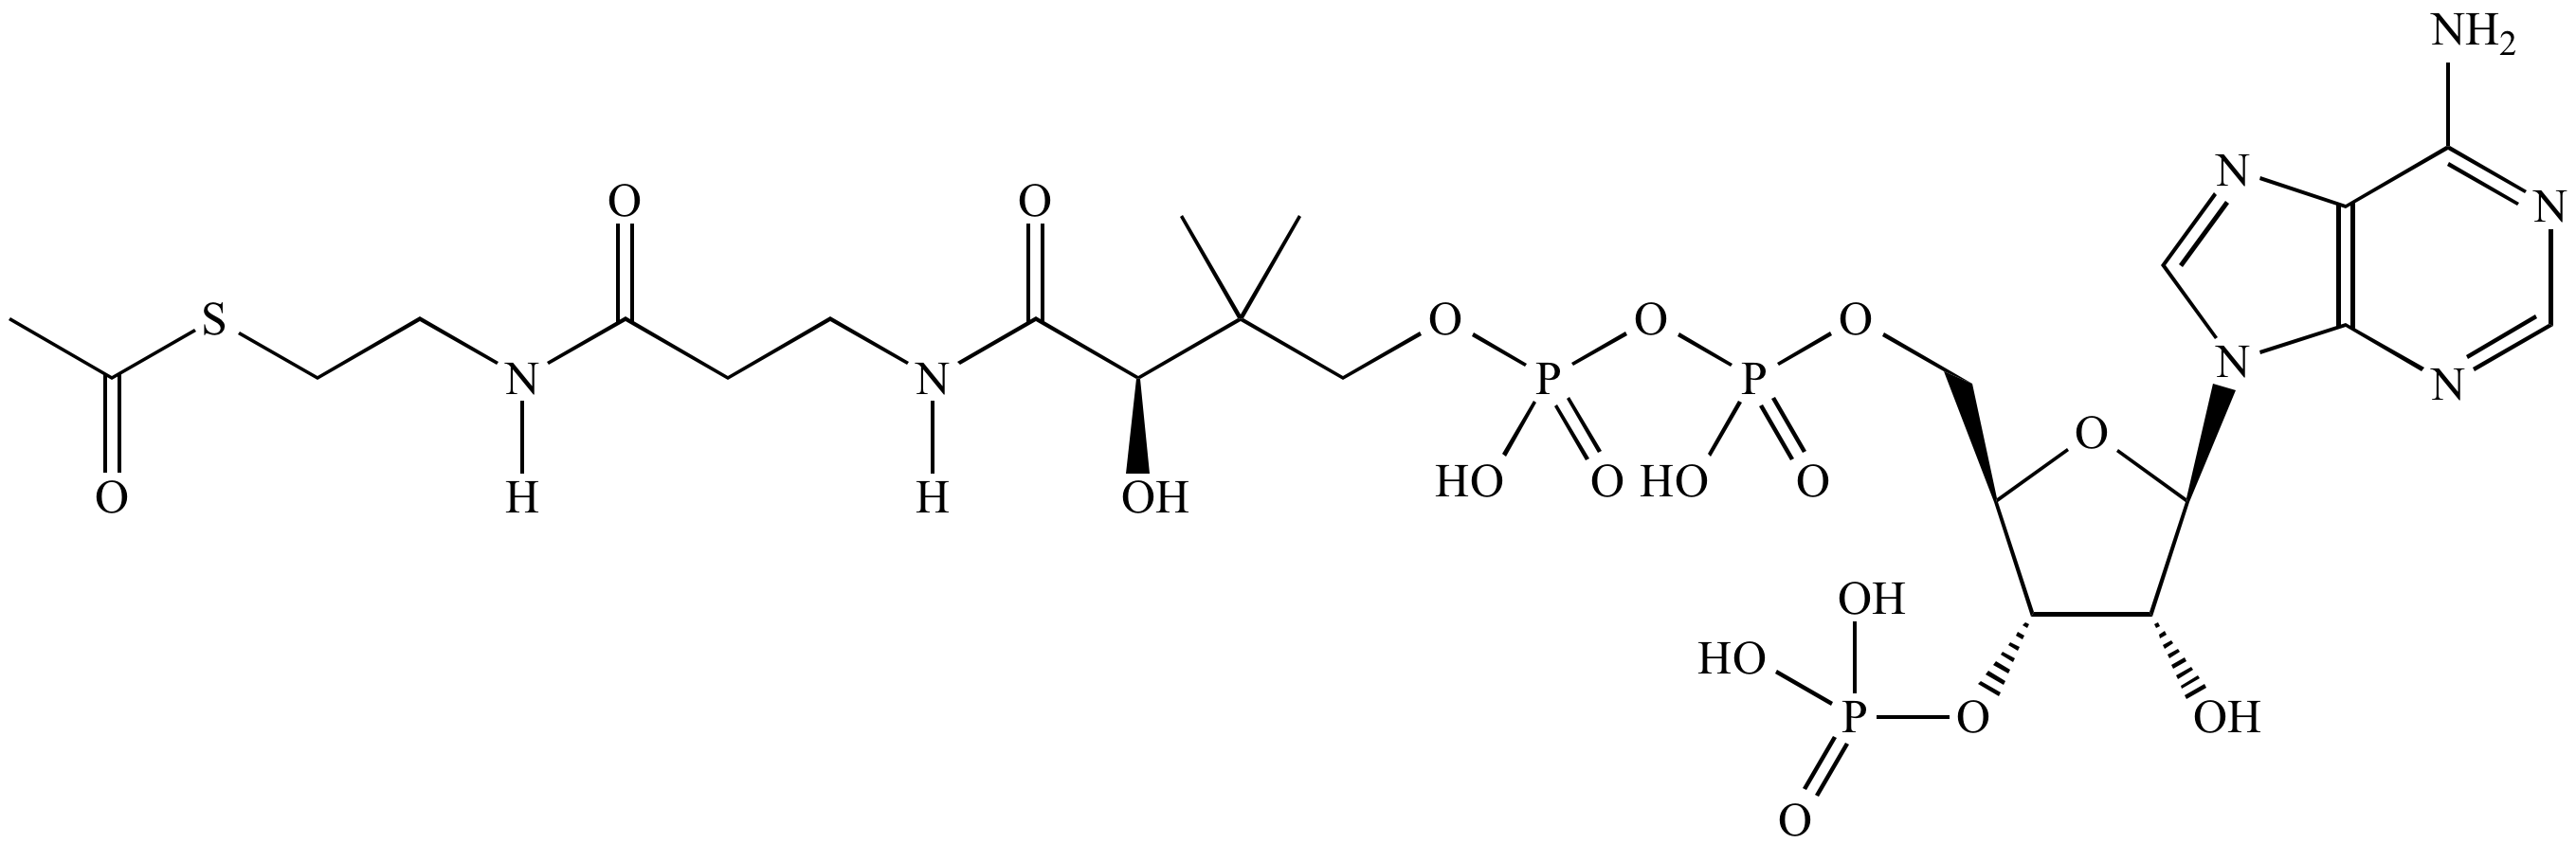 Acetyl Group Structure 97